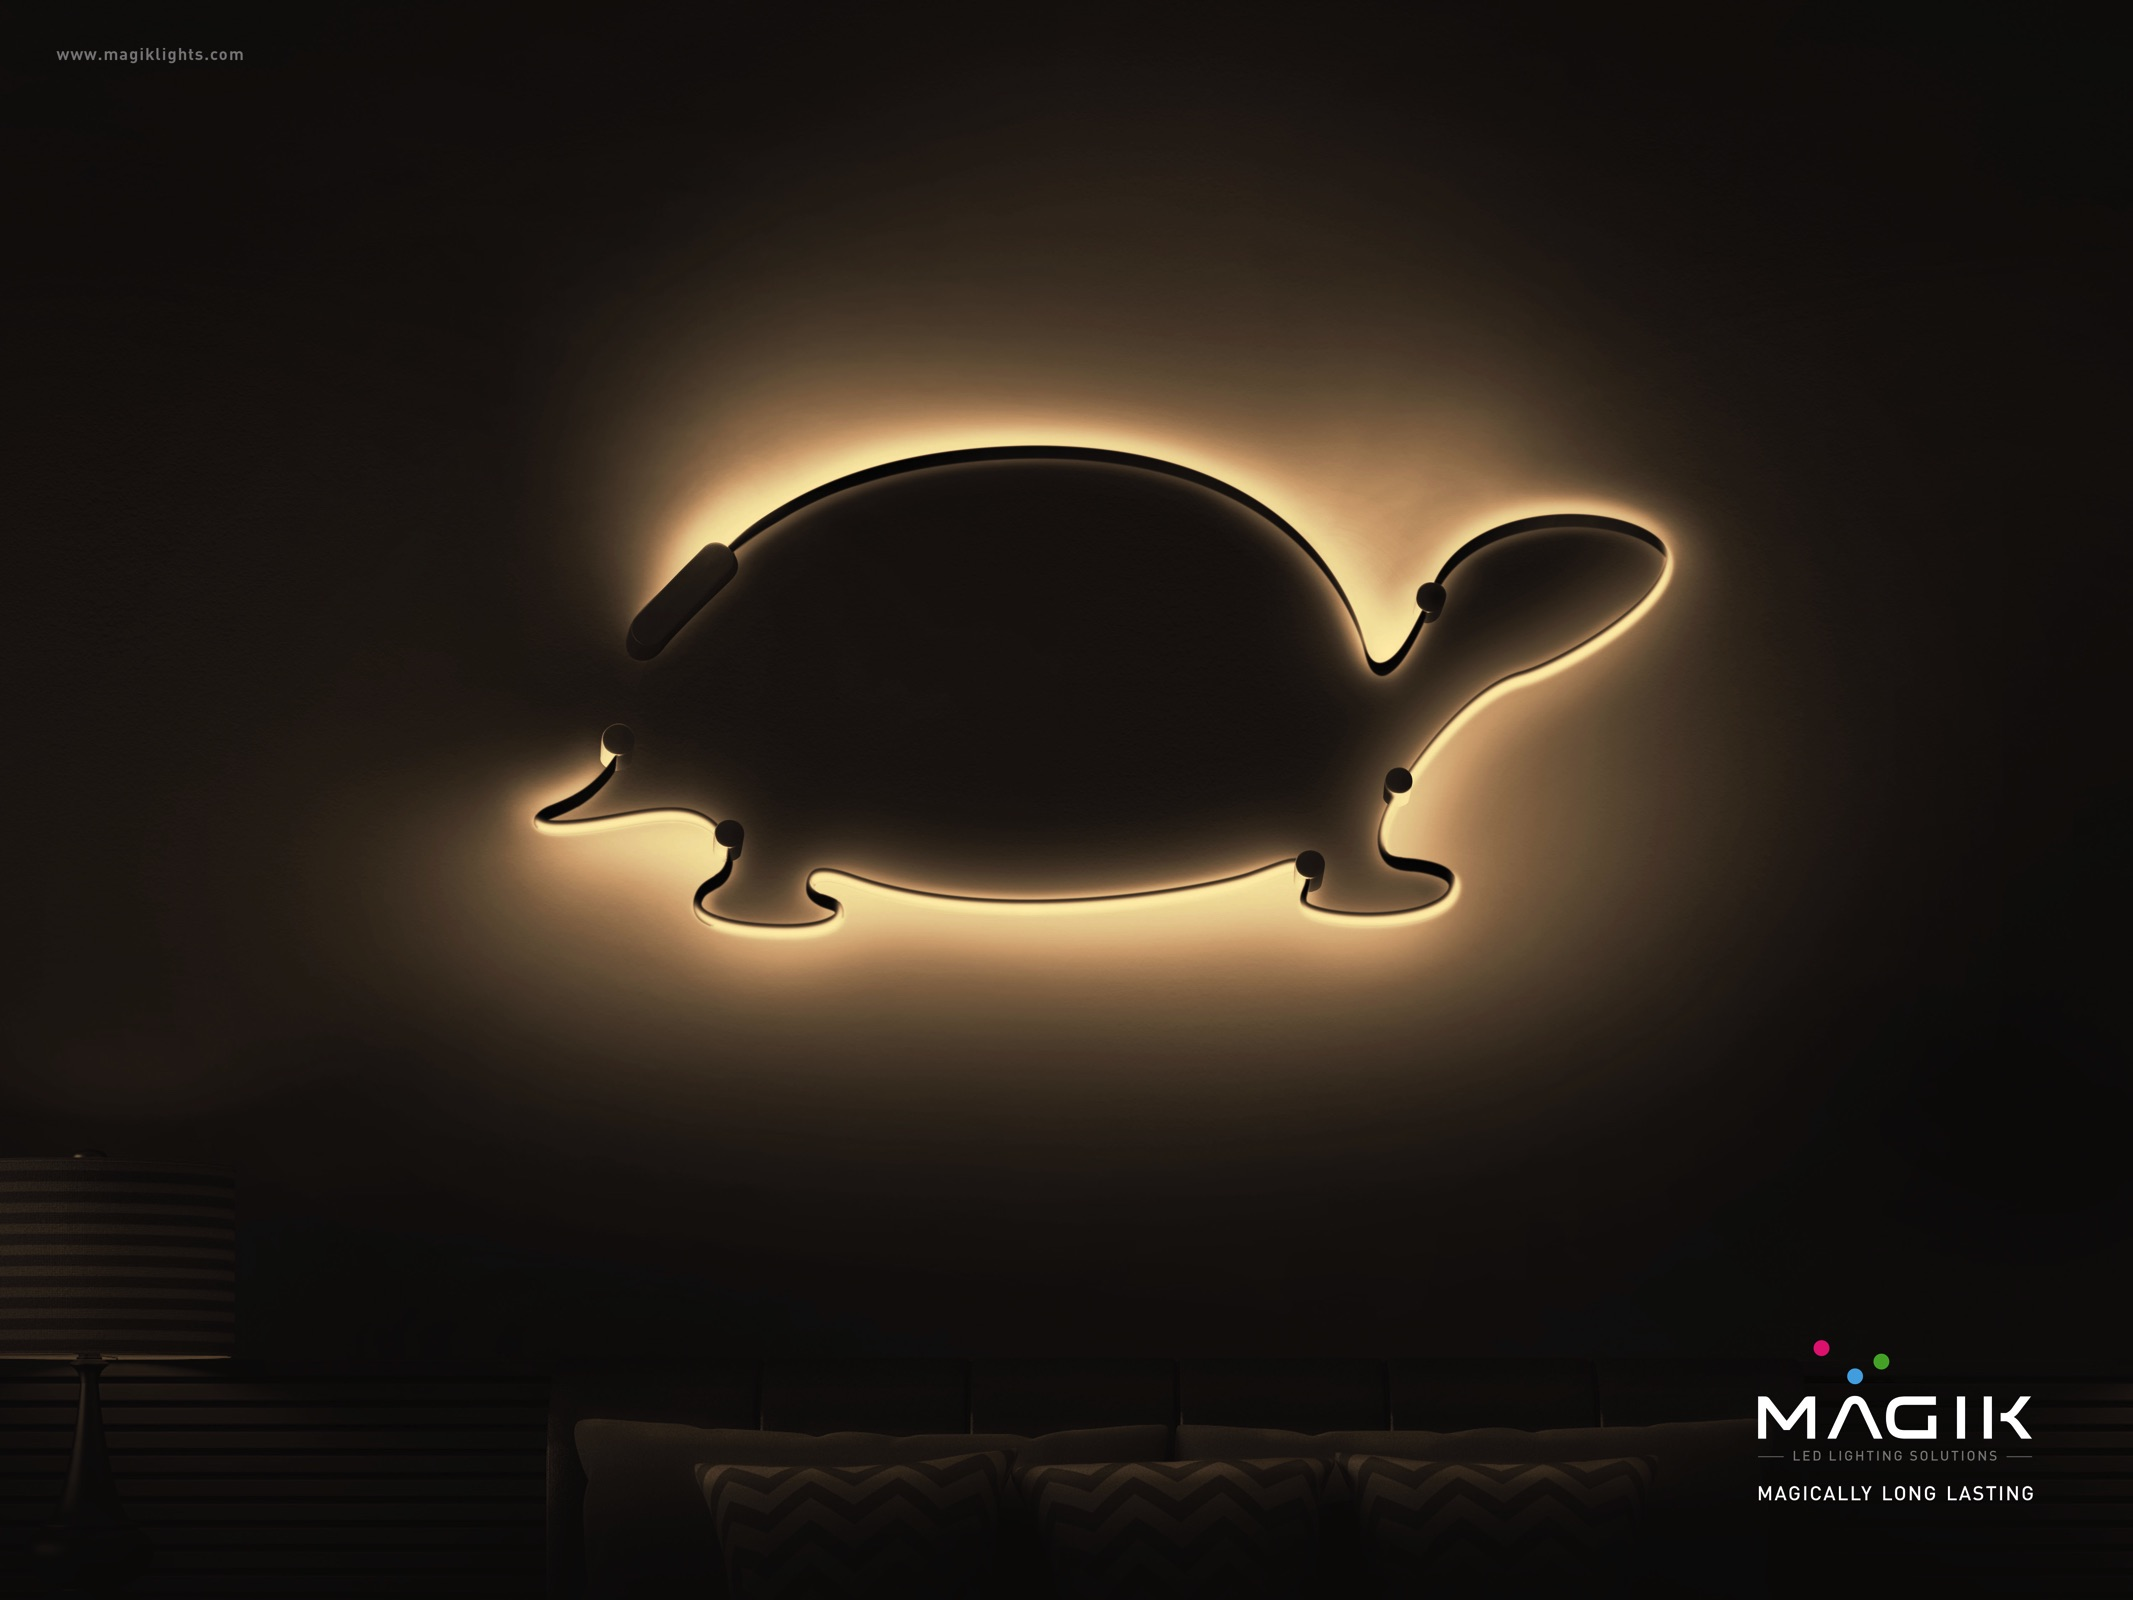 tortoise lighting. Magik Lights Print Ad - Tortoise Lighting